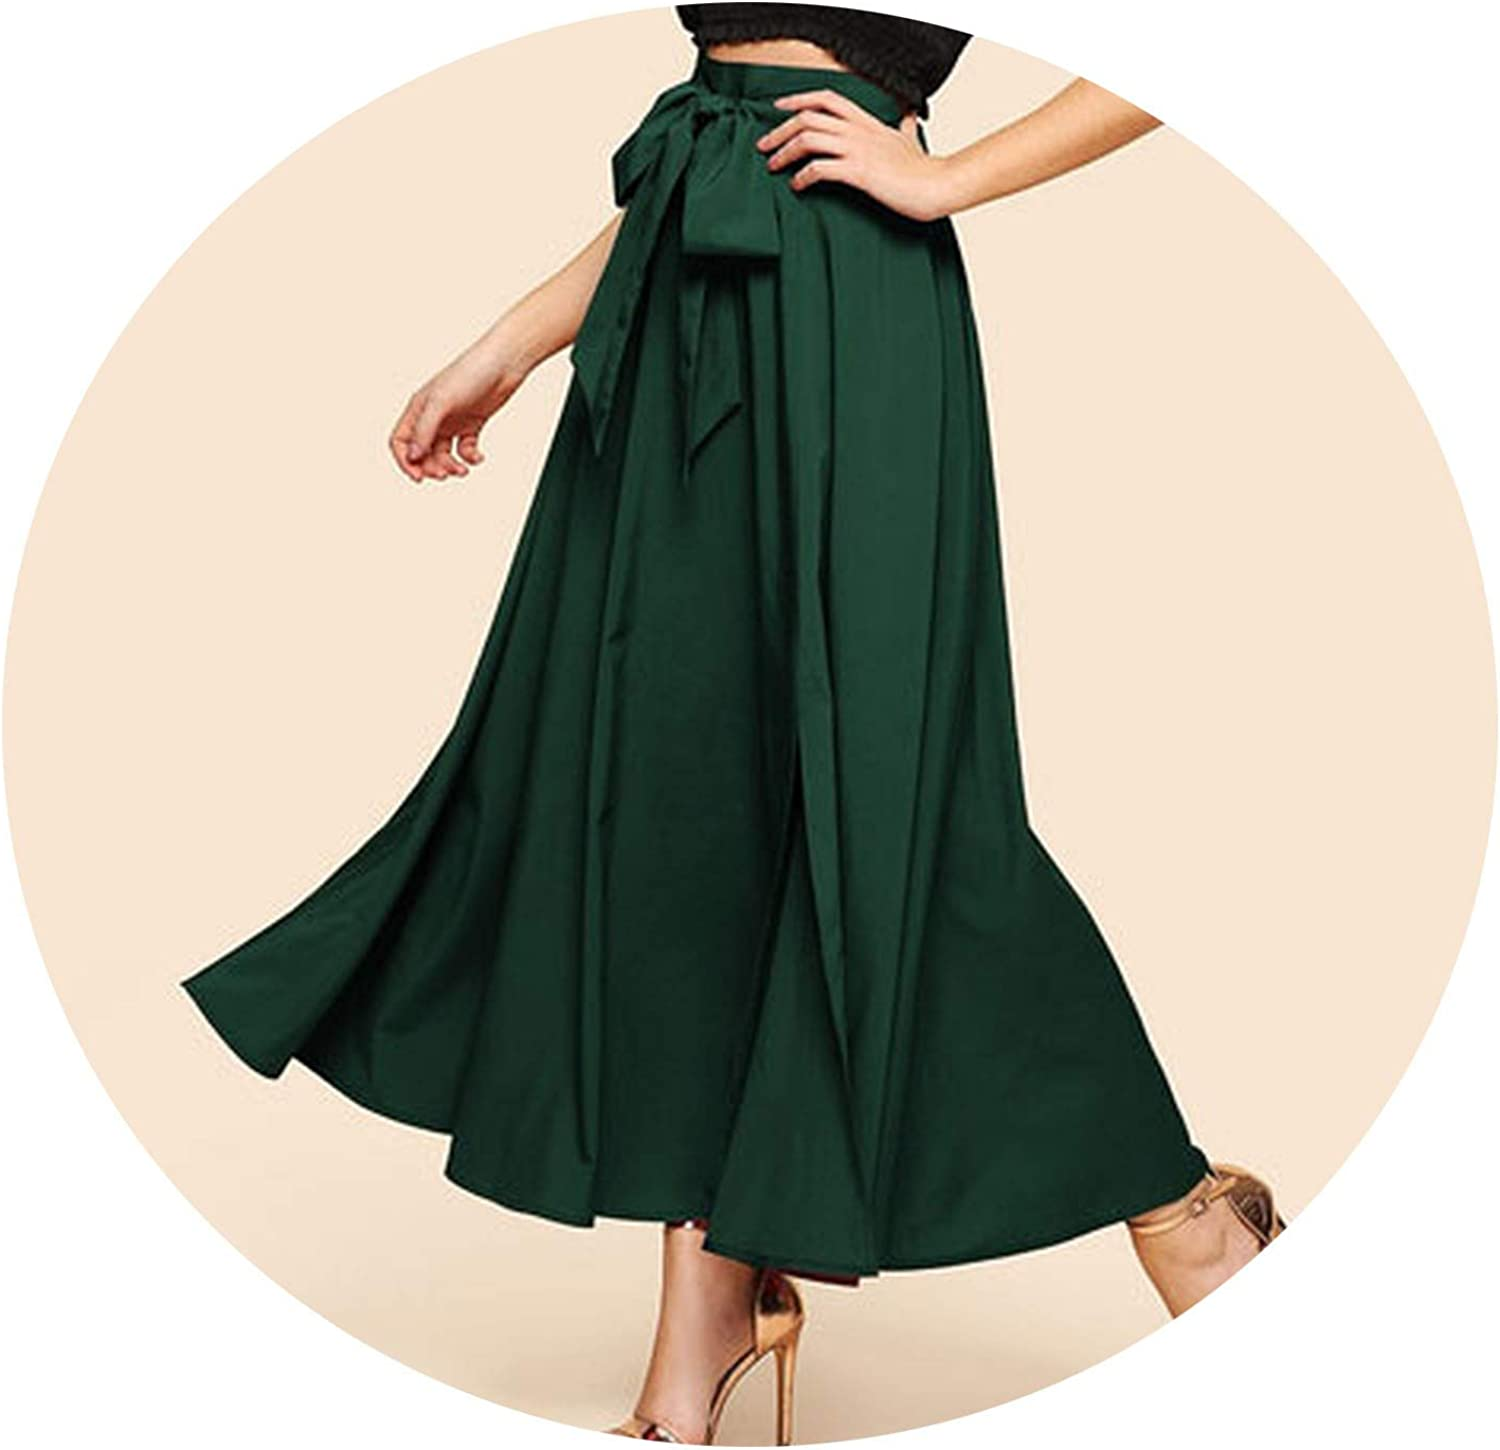 colorfulspace Elegant Bow Knot Front Flare Maxi Skirt Women High Waist Plain Vintage Full Length Party Skirt